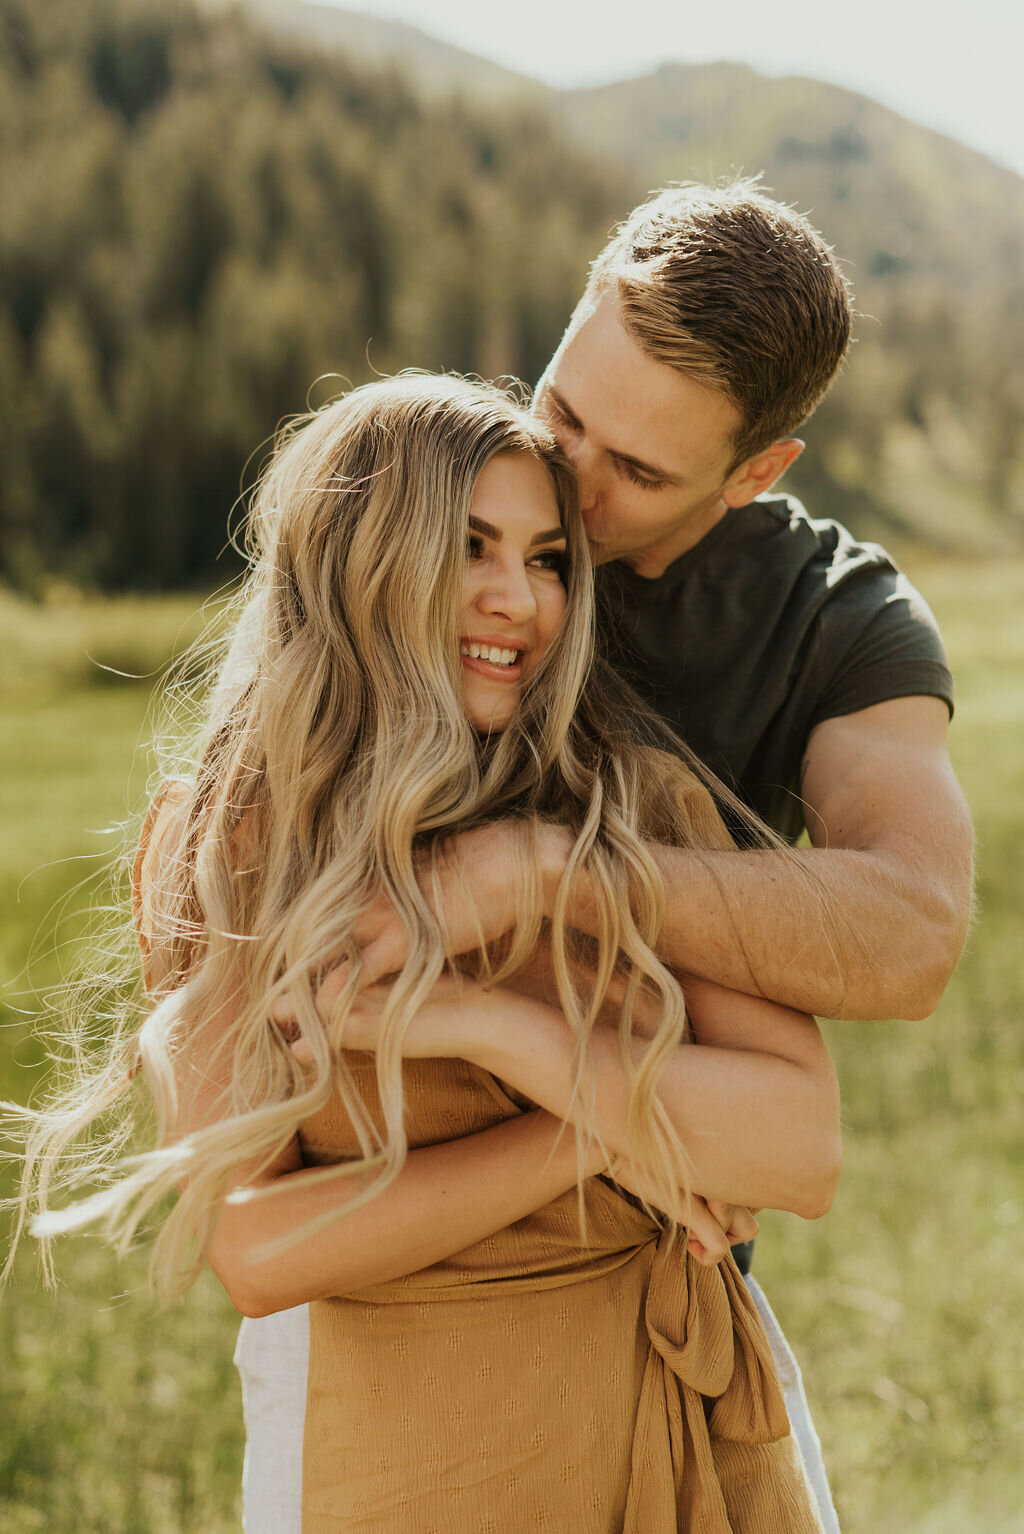 mountain-engagement-session-provo-utah-kyle-and-taylor-30.jpg